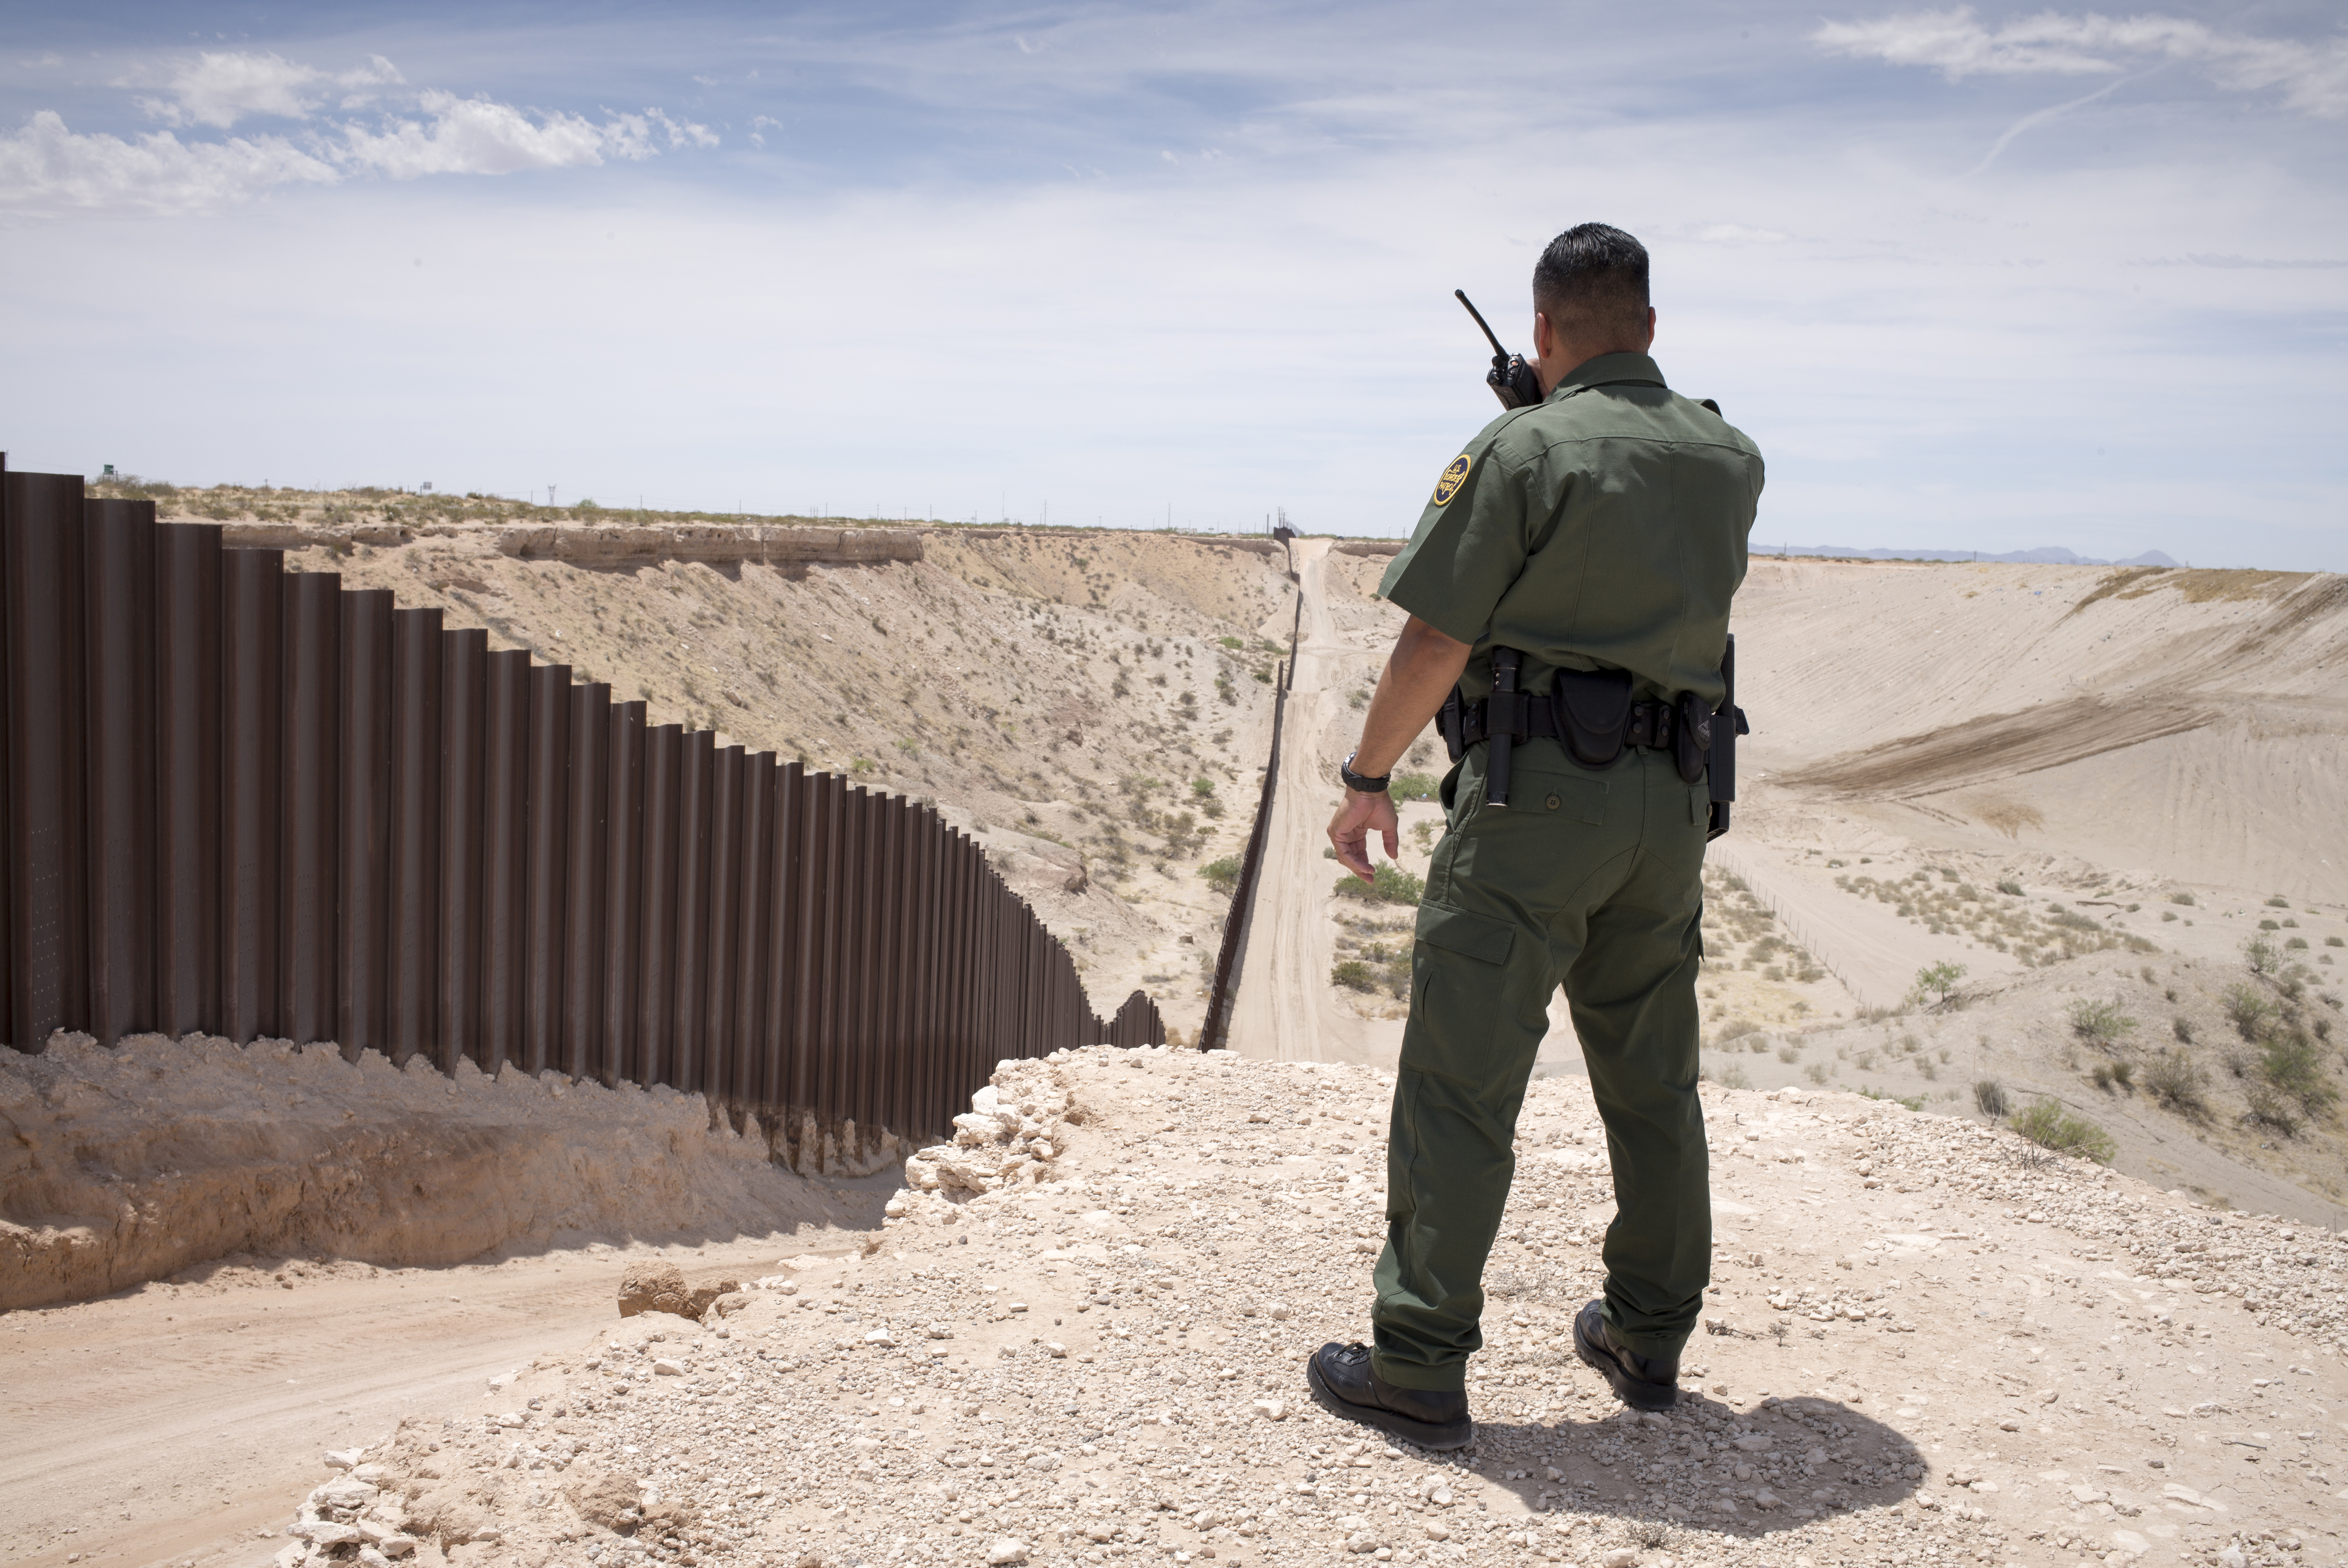 A Border Patrol agent watches over the border fence on the U.S.-Mexico border near Sunland Park, New Mexico.